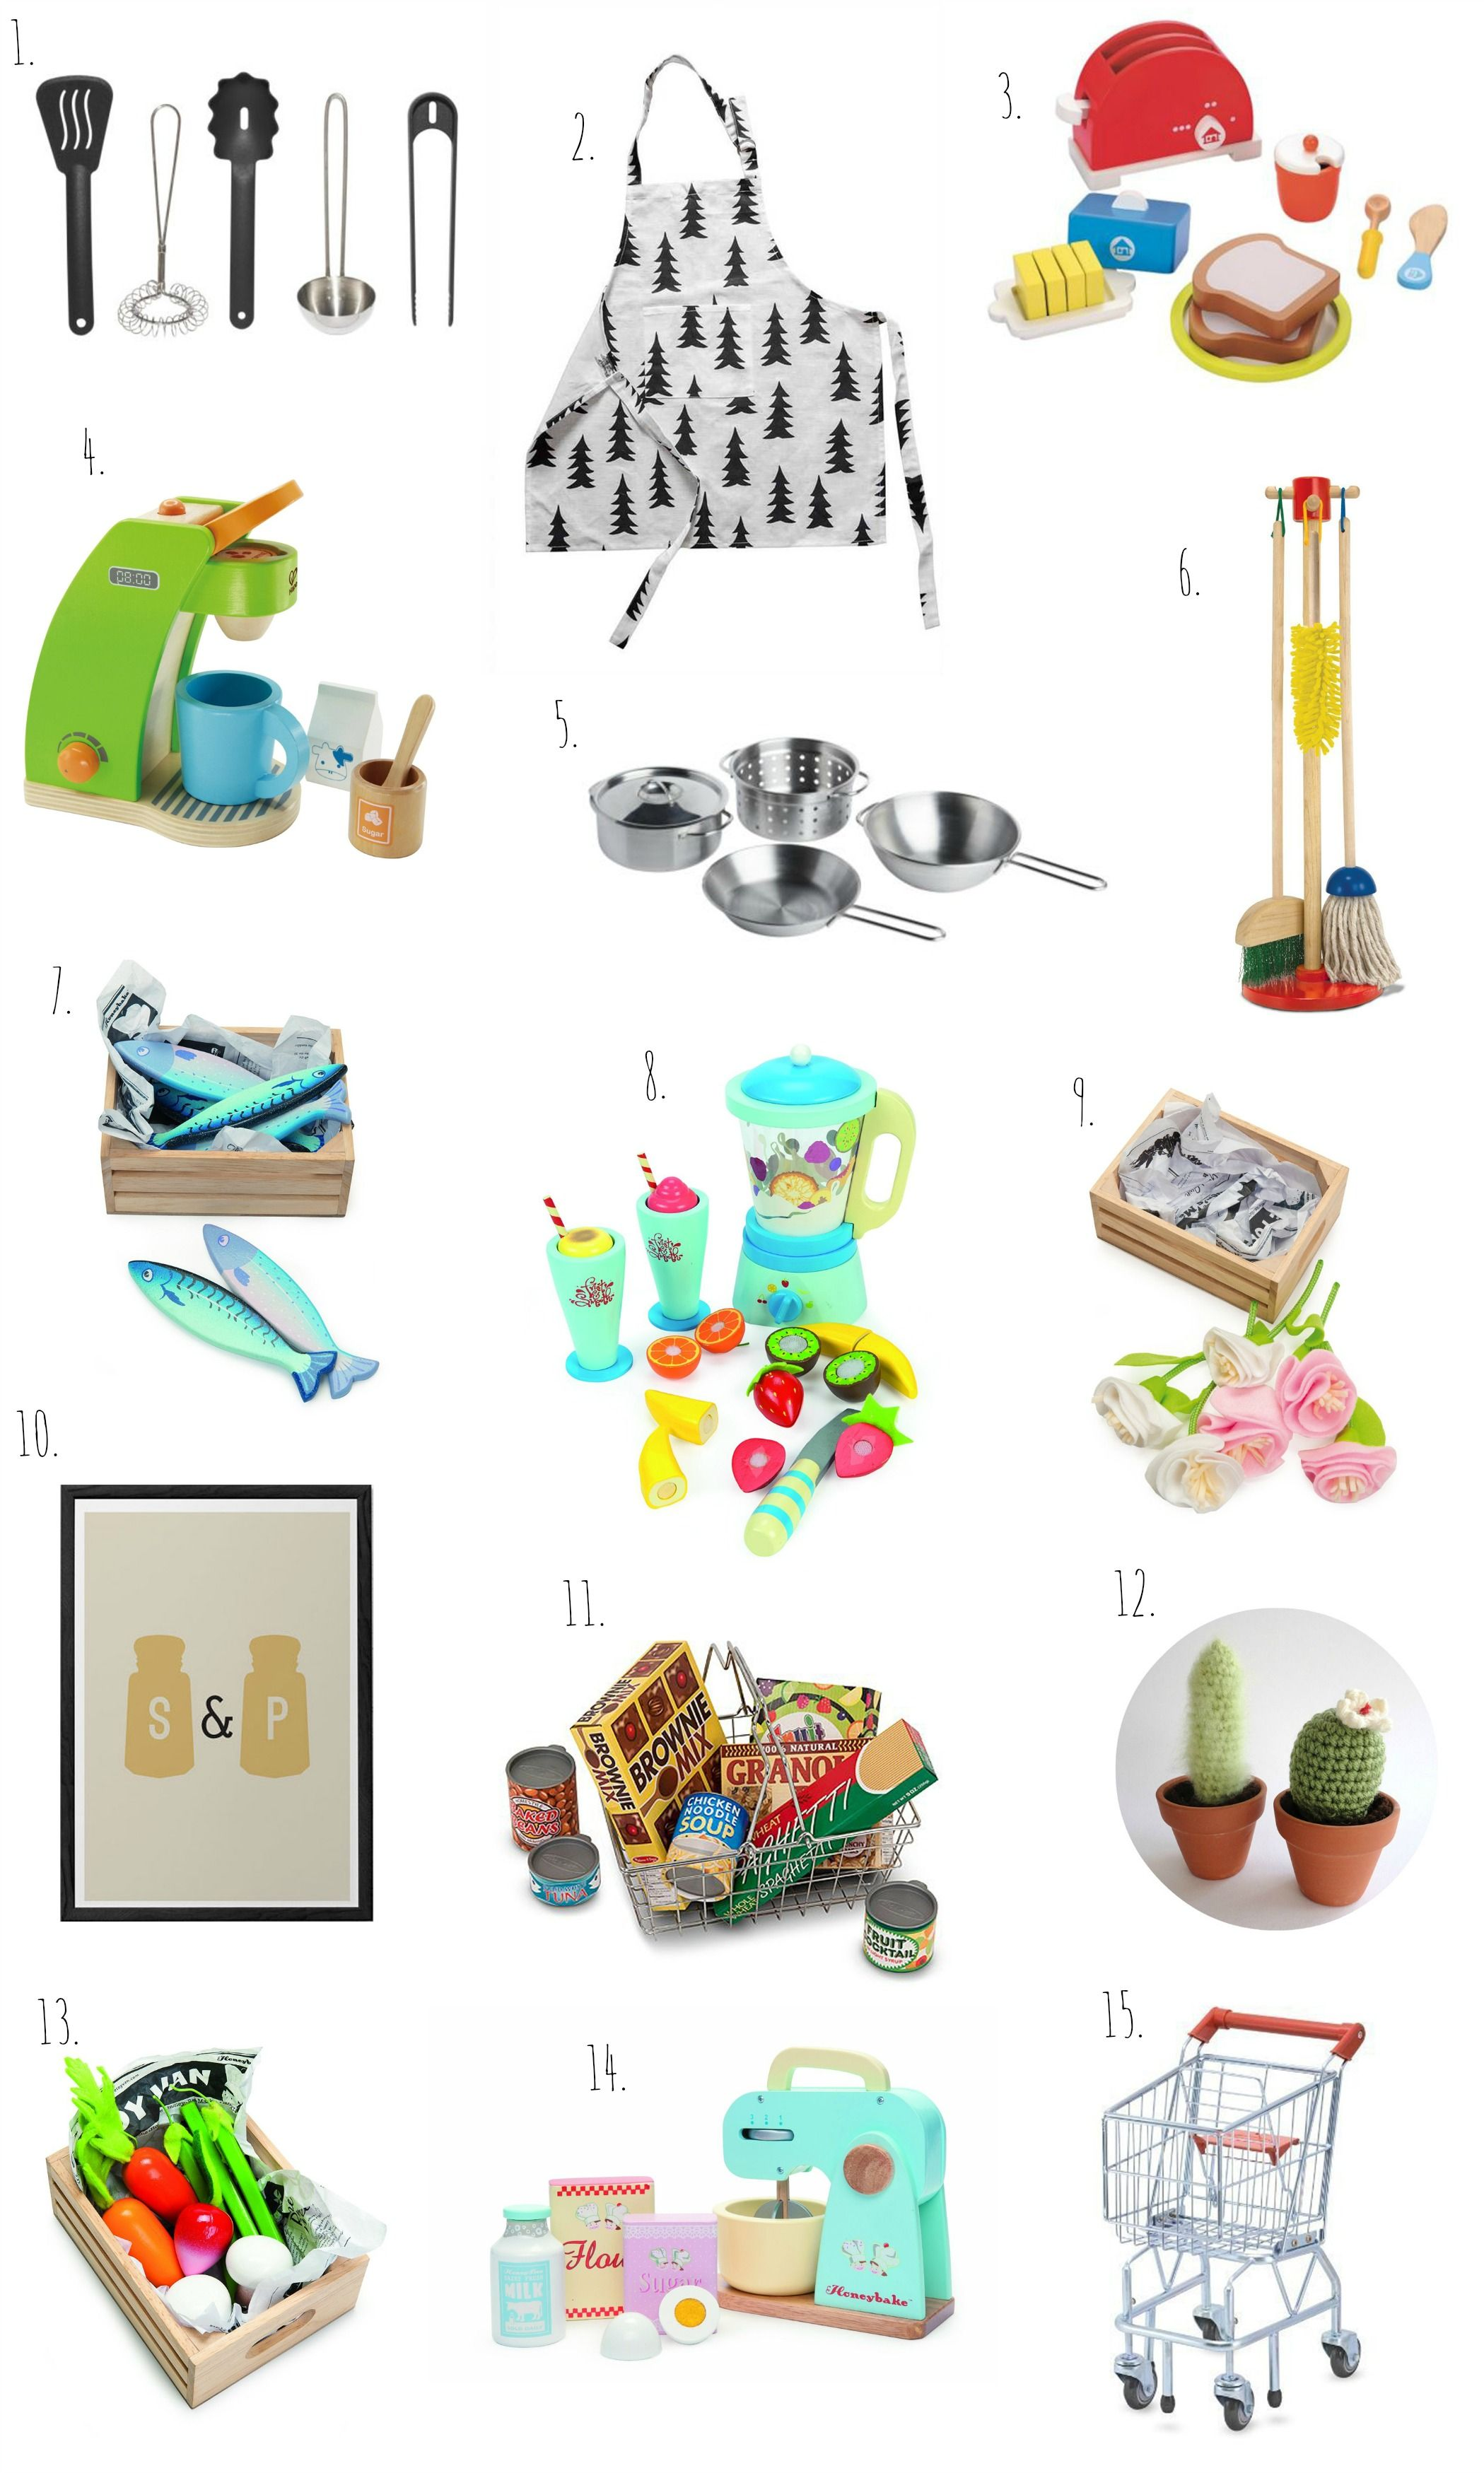 play kitchen accessories  odette  pinterest  play kitchen  - play kitchen accessories